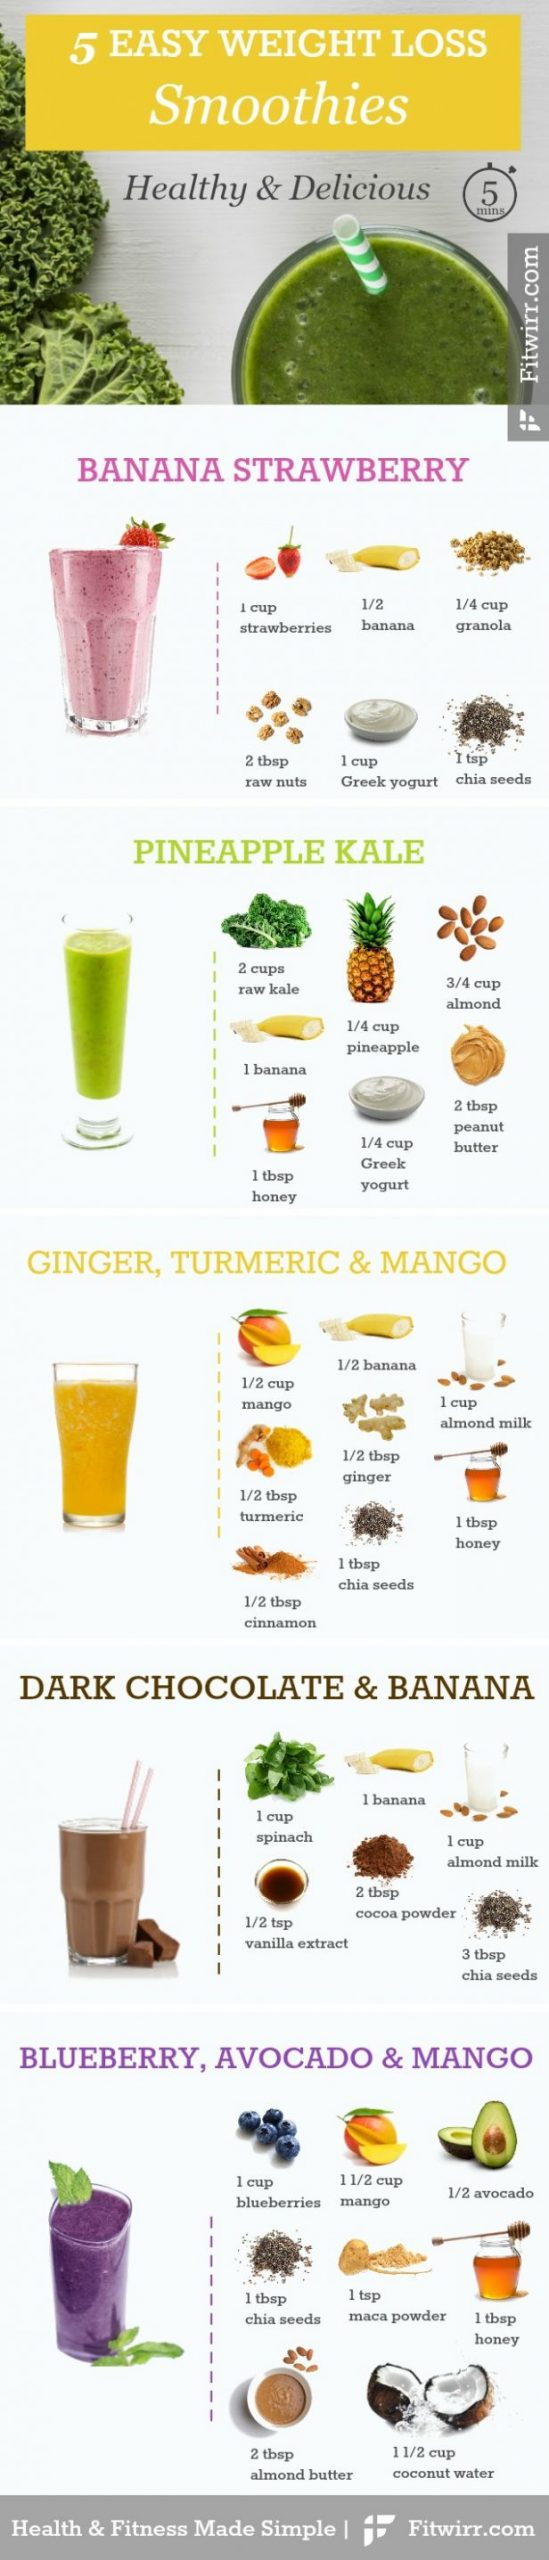 12 Best Smoothie Recipes for Weight Loss - Fitwirr